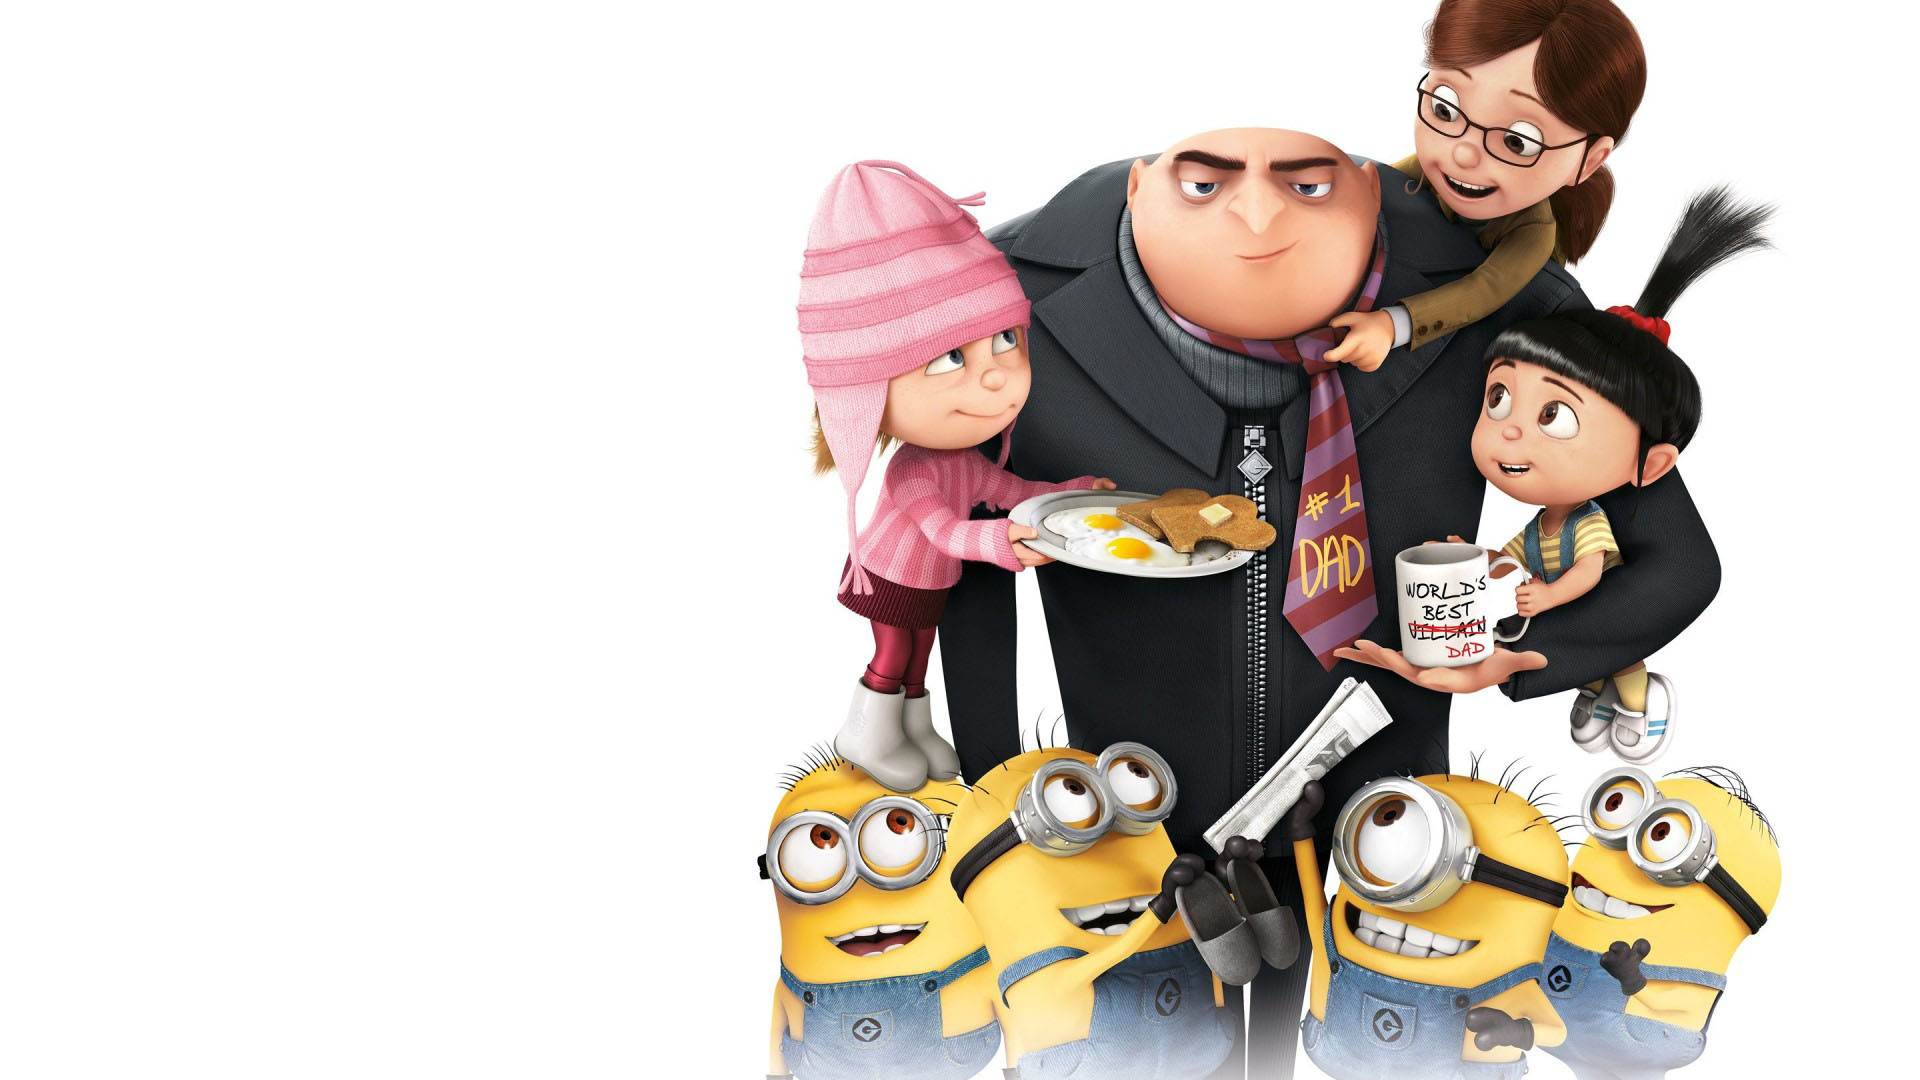 Despicable Me 2   World Best Dad   Wallpaper 3100 on WallpaperMade 1920x1080